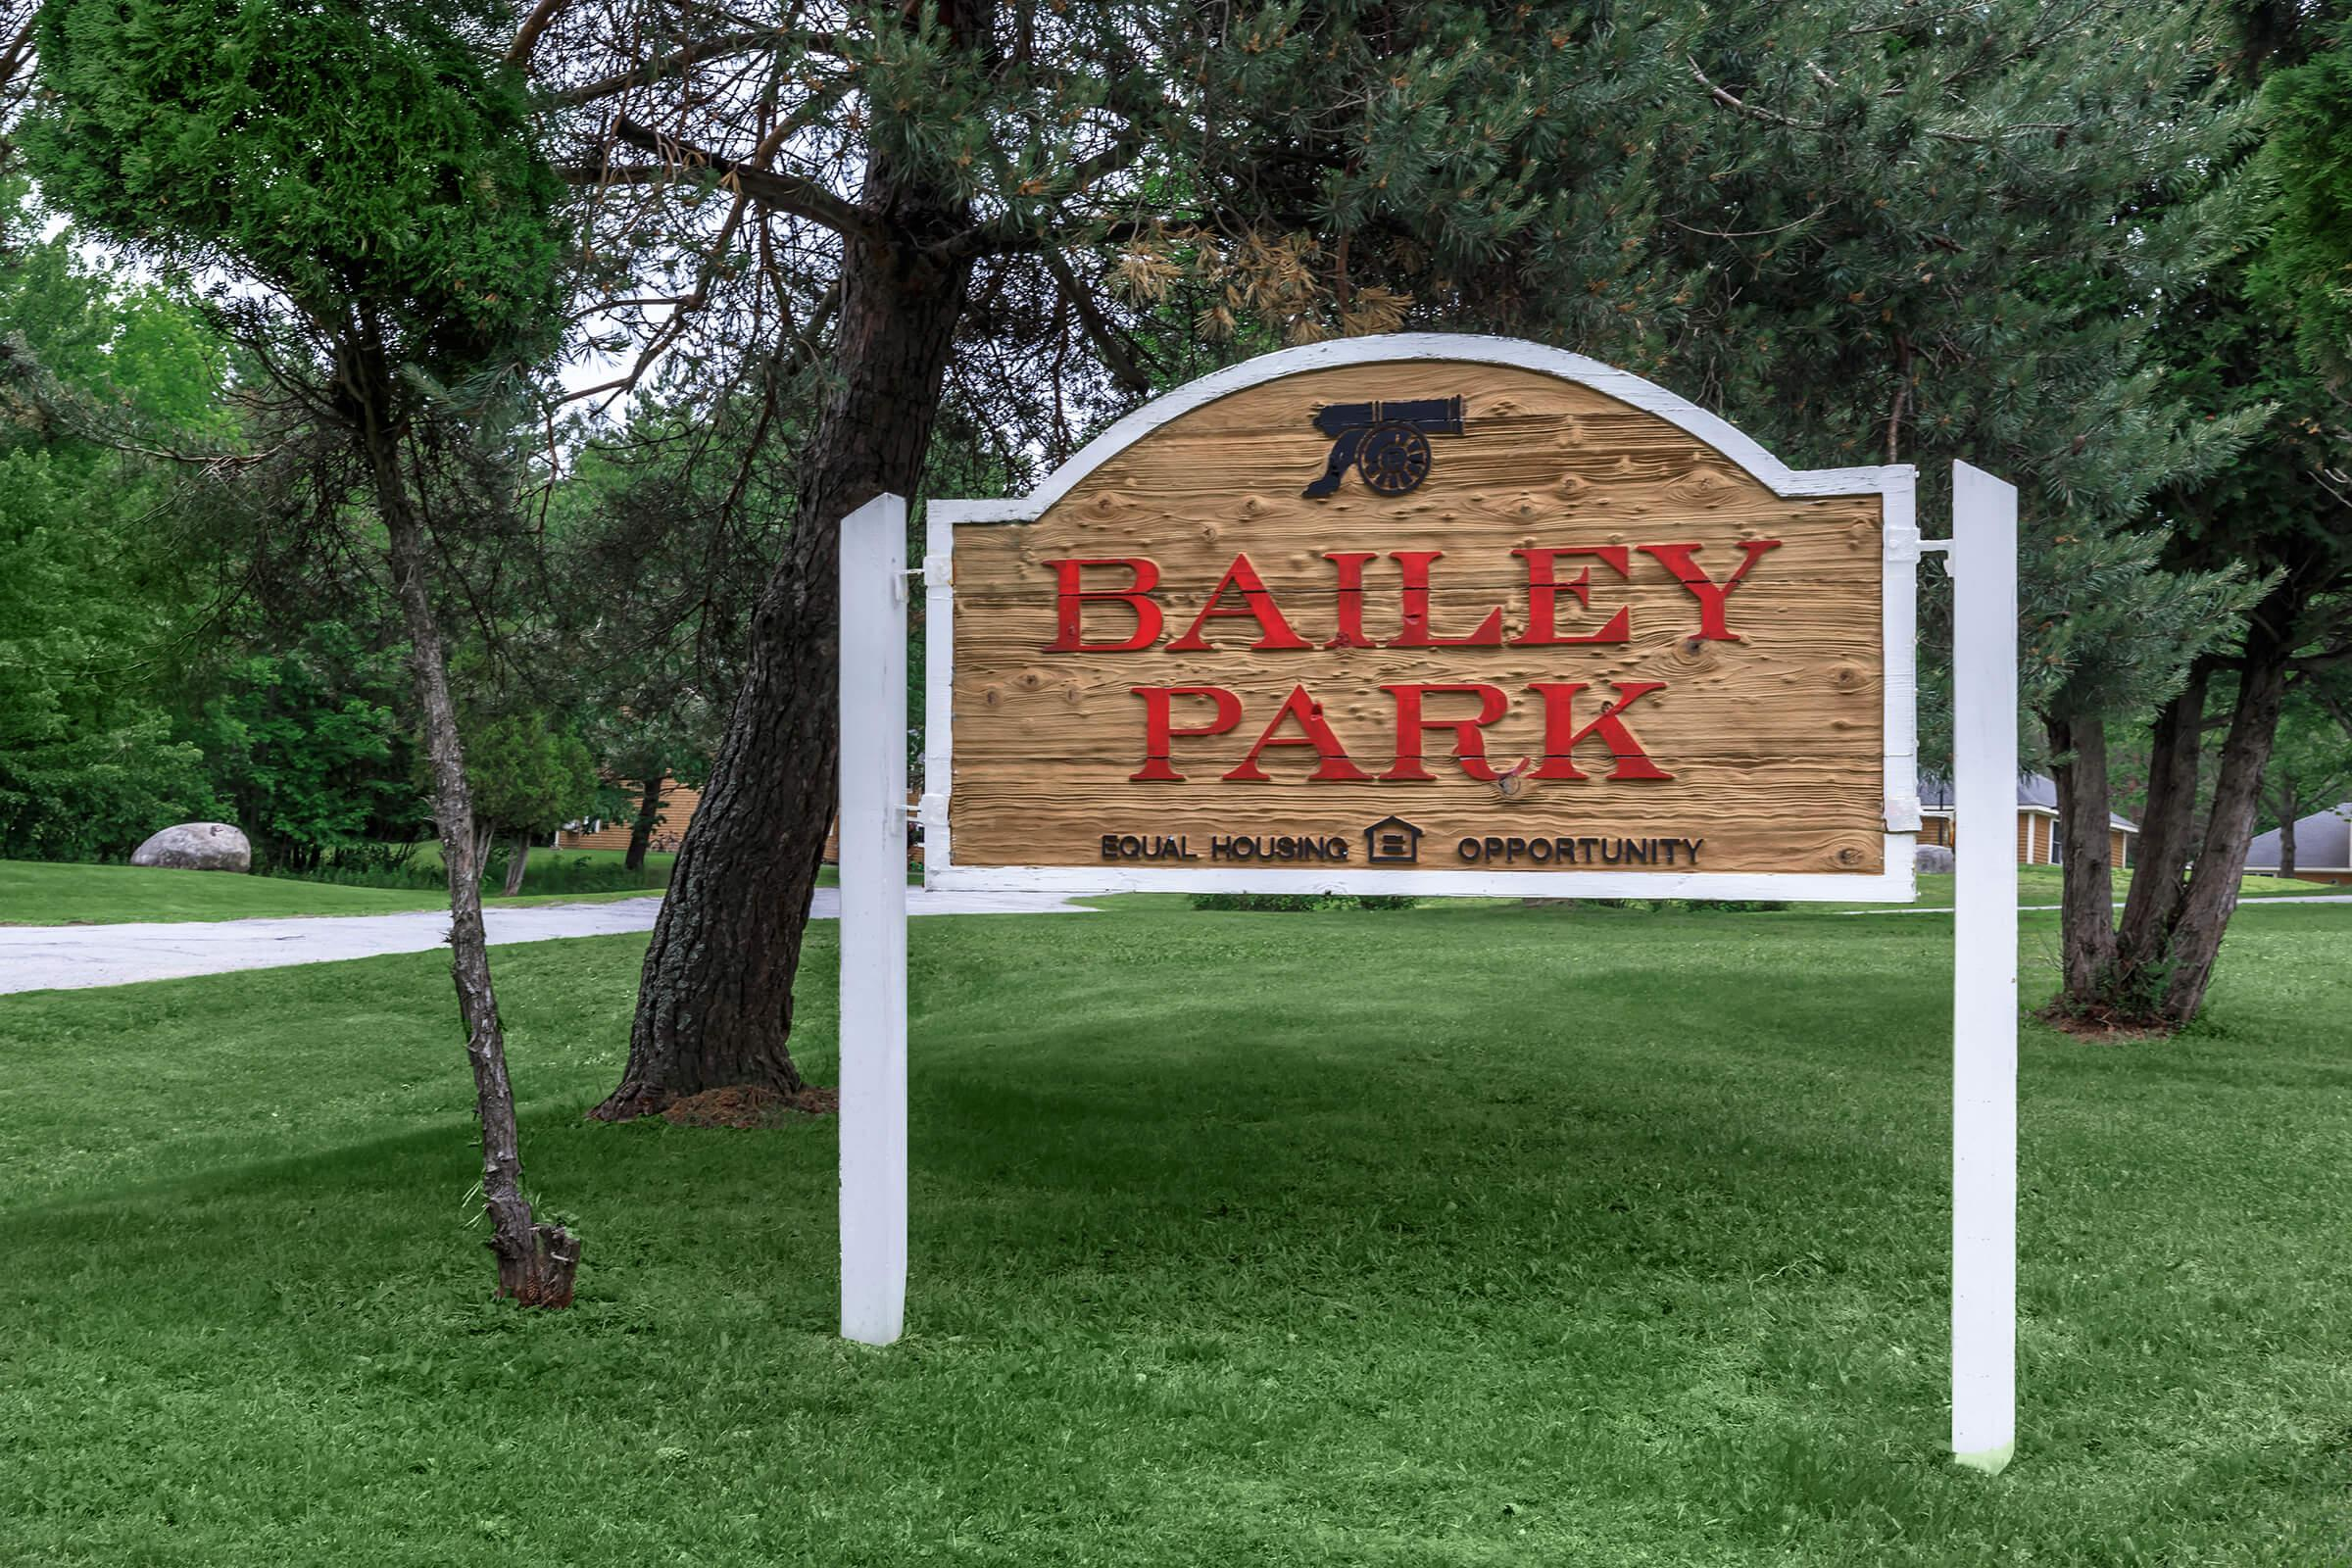 a sign over a grassy area with trees in the background